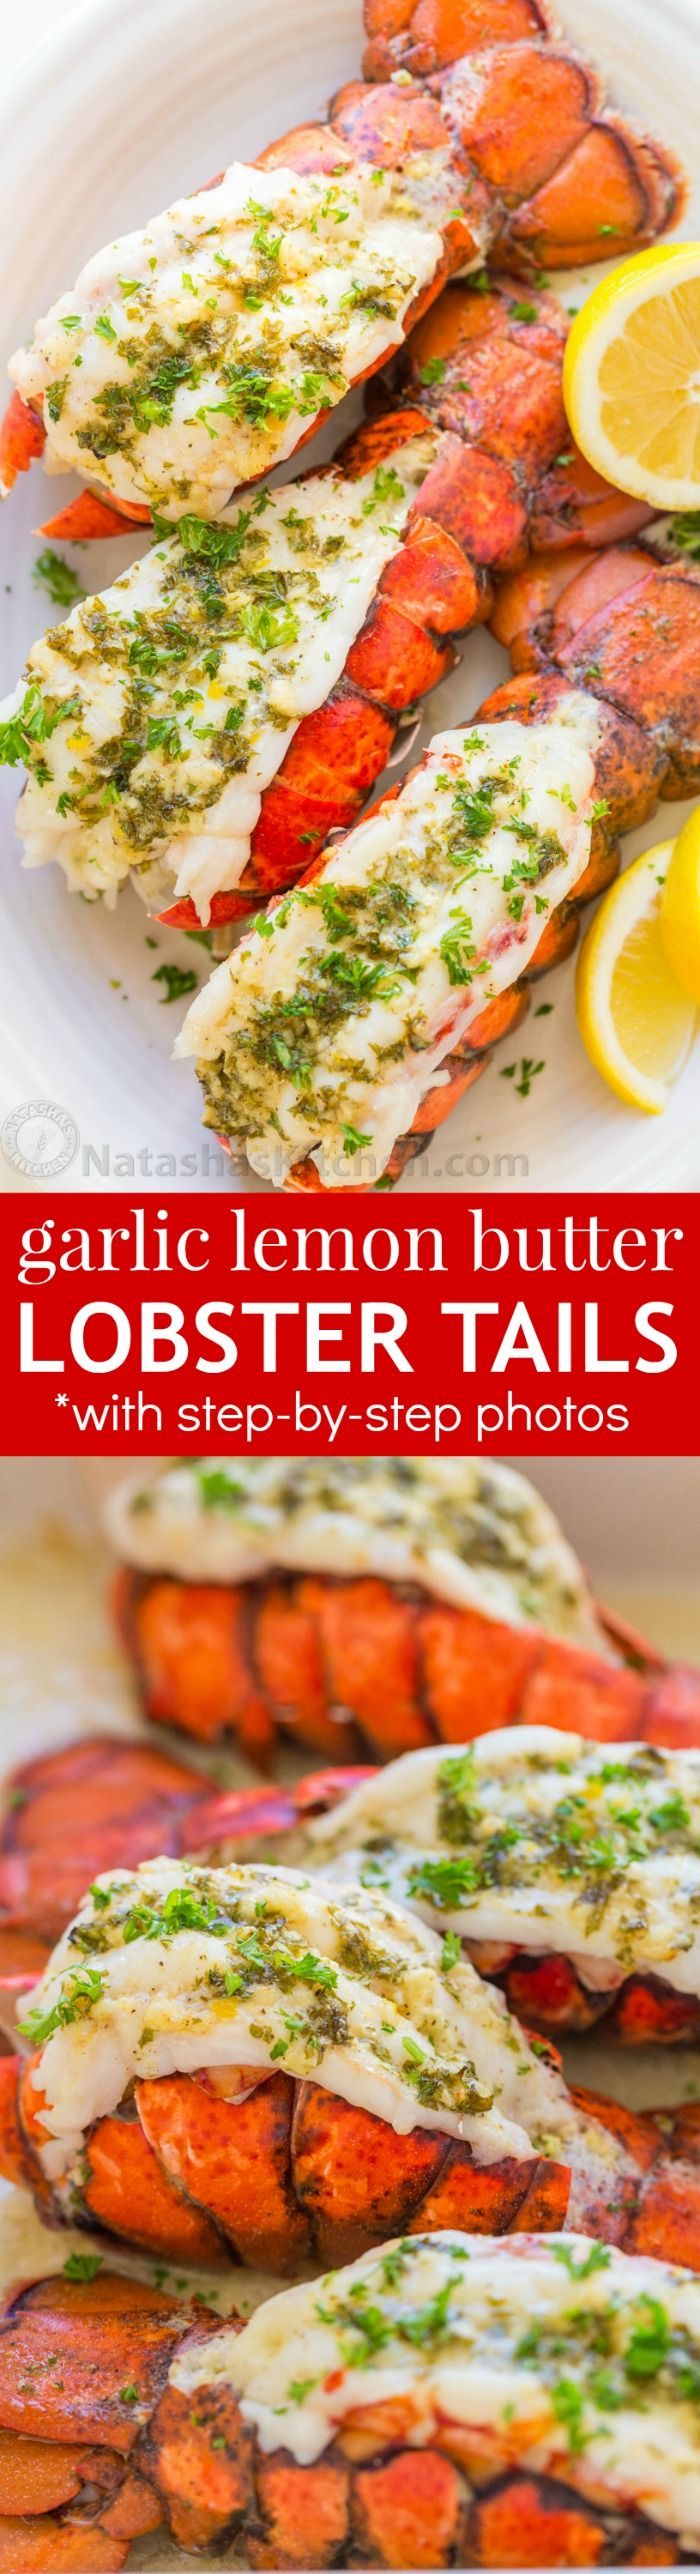 Lobster Tails Recipe with Garlic Lemon Butter | Recipe | Lobster ...